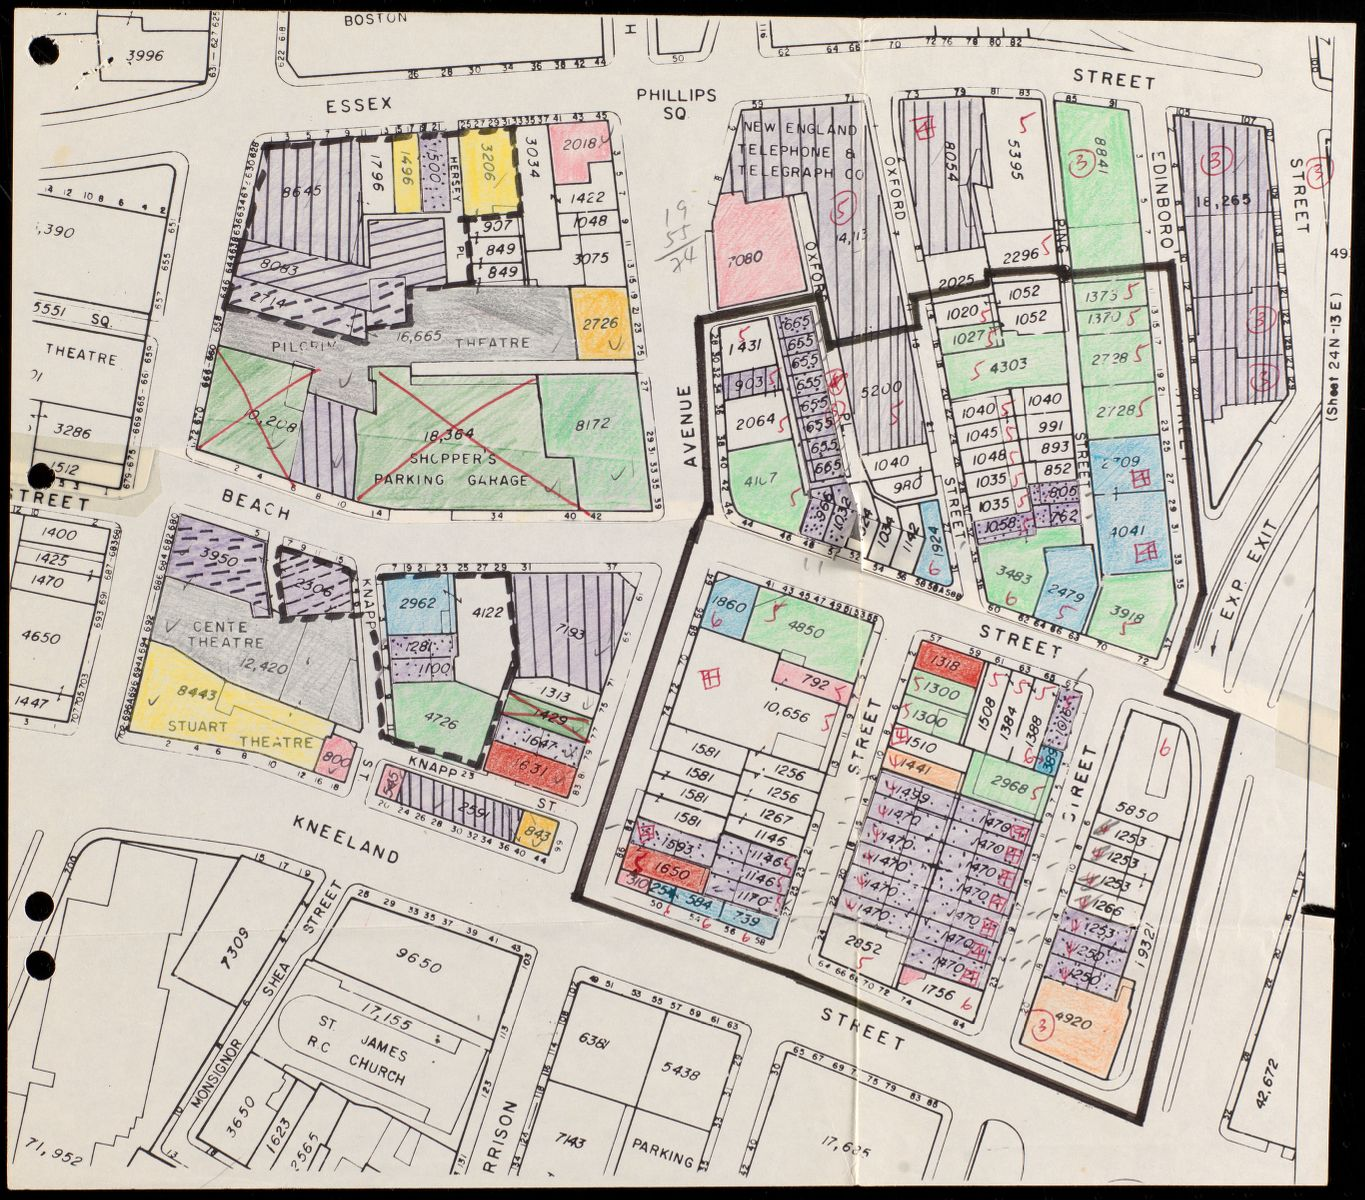 The collection includes not only published plans intended for public audiences, but also the kinds of materials that were used in the BRA's daily operations, like this study map of architectural styles in Chinatown